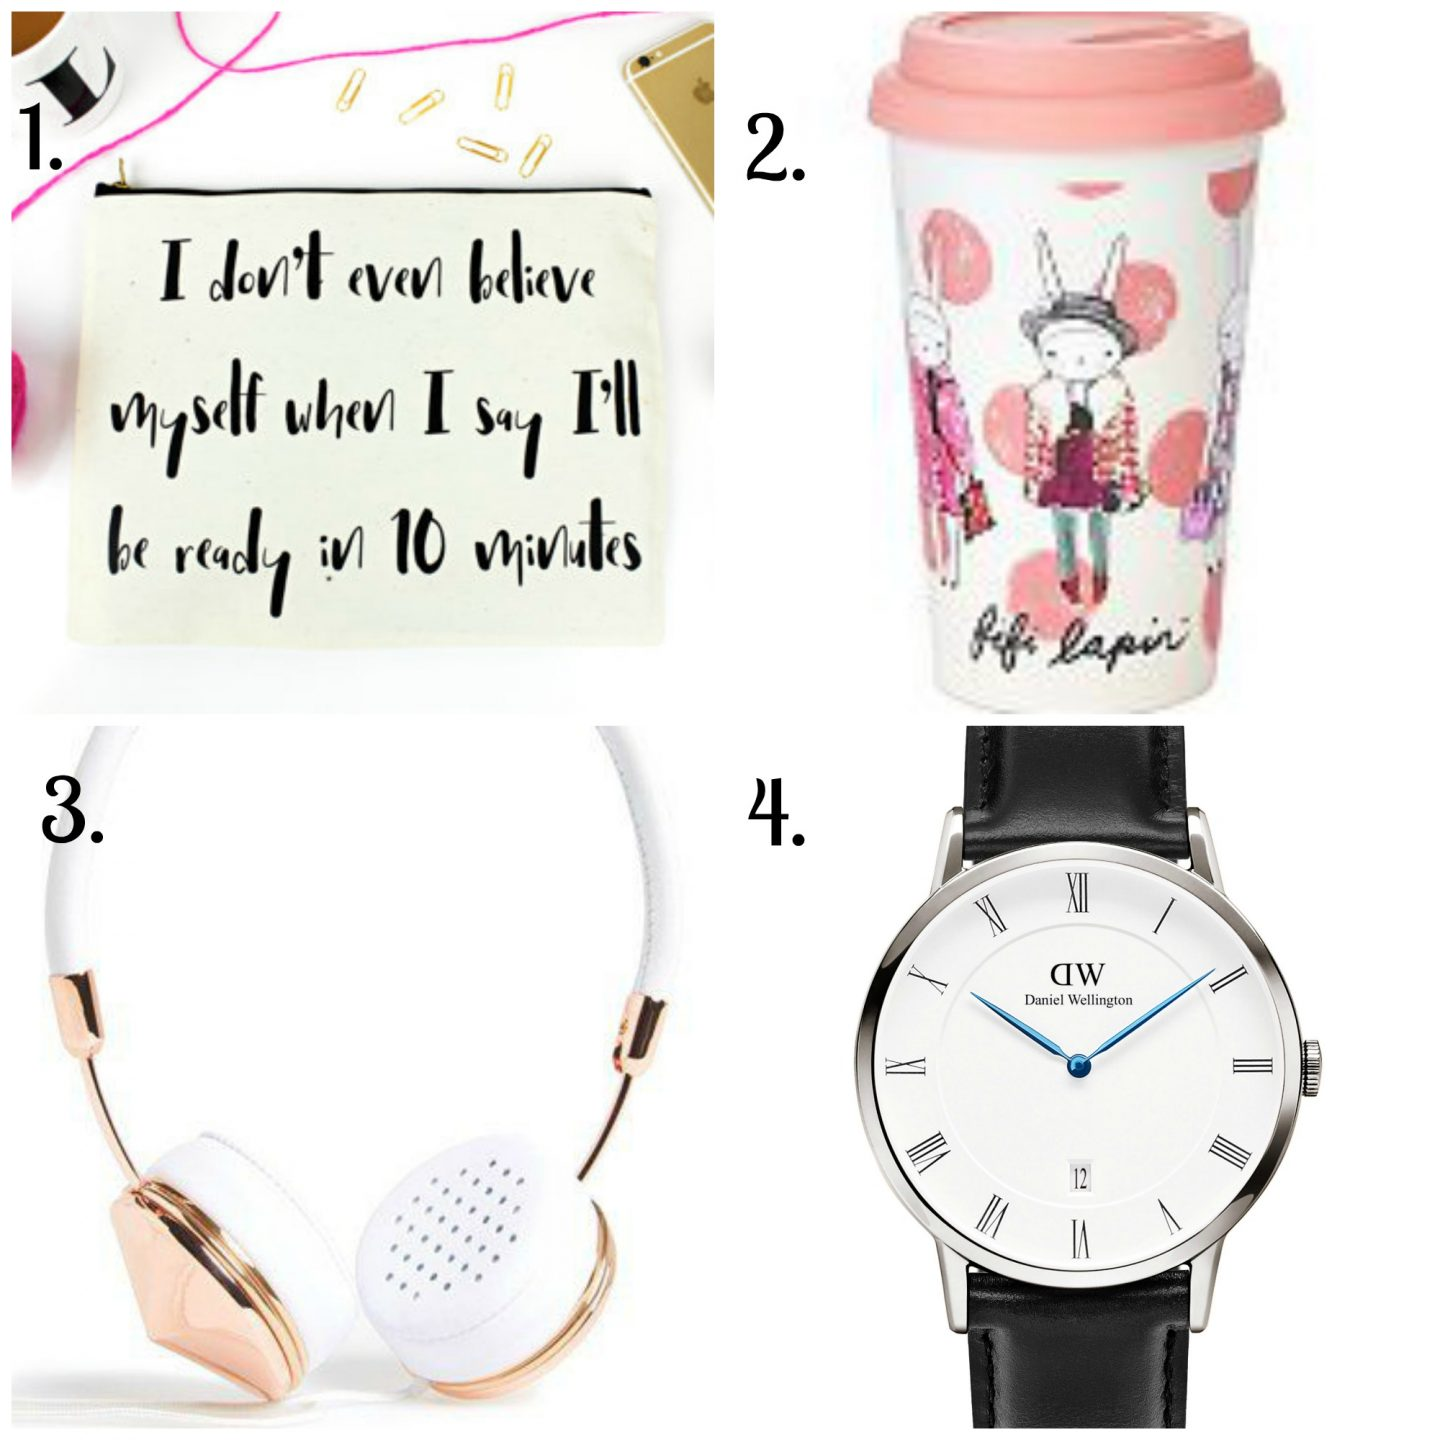 GIFT GUIDE FOR BLOGGERS